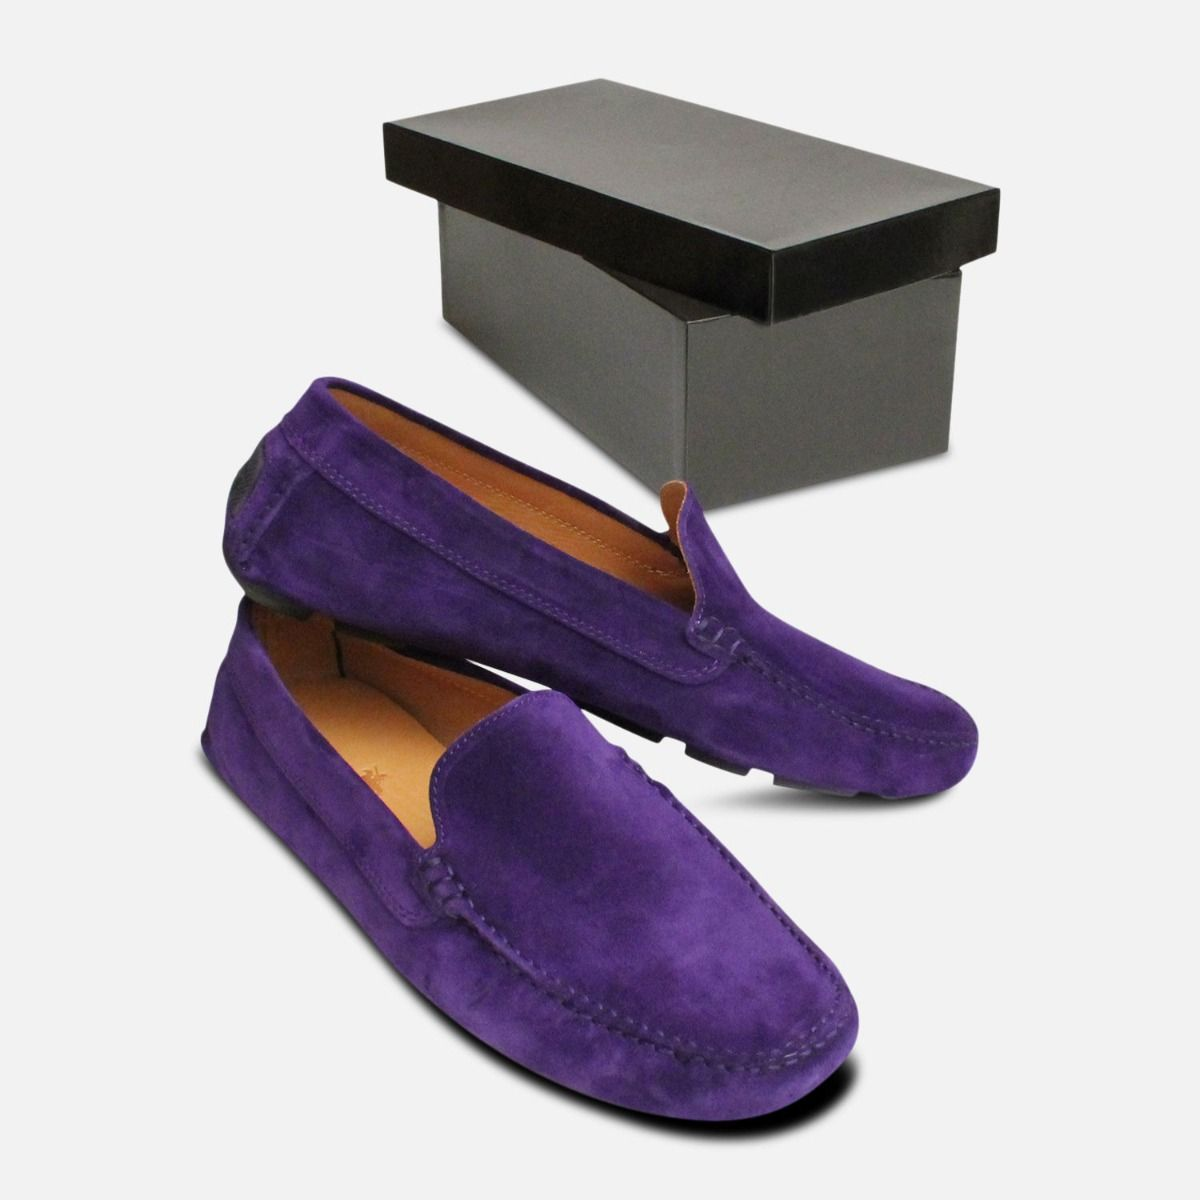 90b7edeb7dc Deep Purple Italian Moccasins by Arthur Knight Shoes